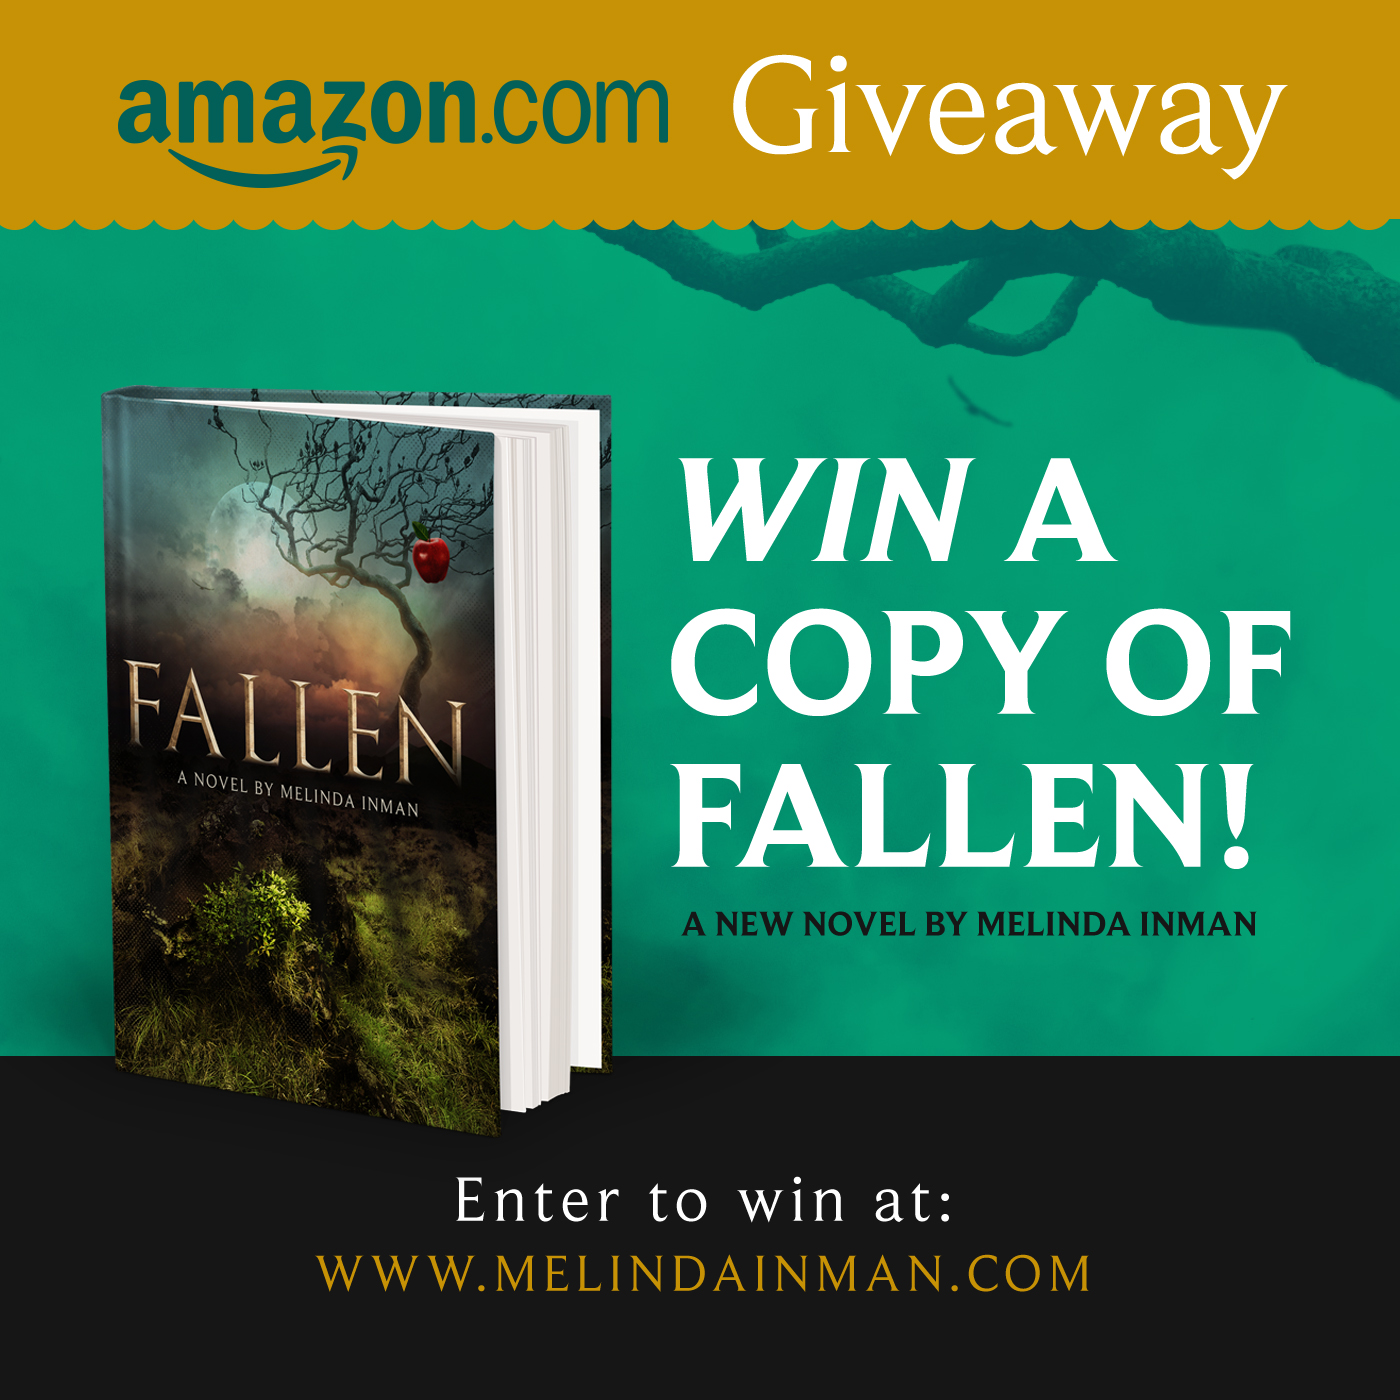 #002, Fallen-Giveaways-Amazon